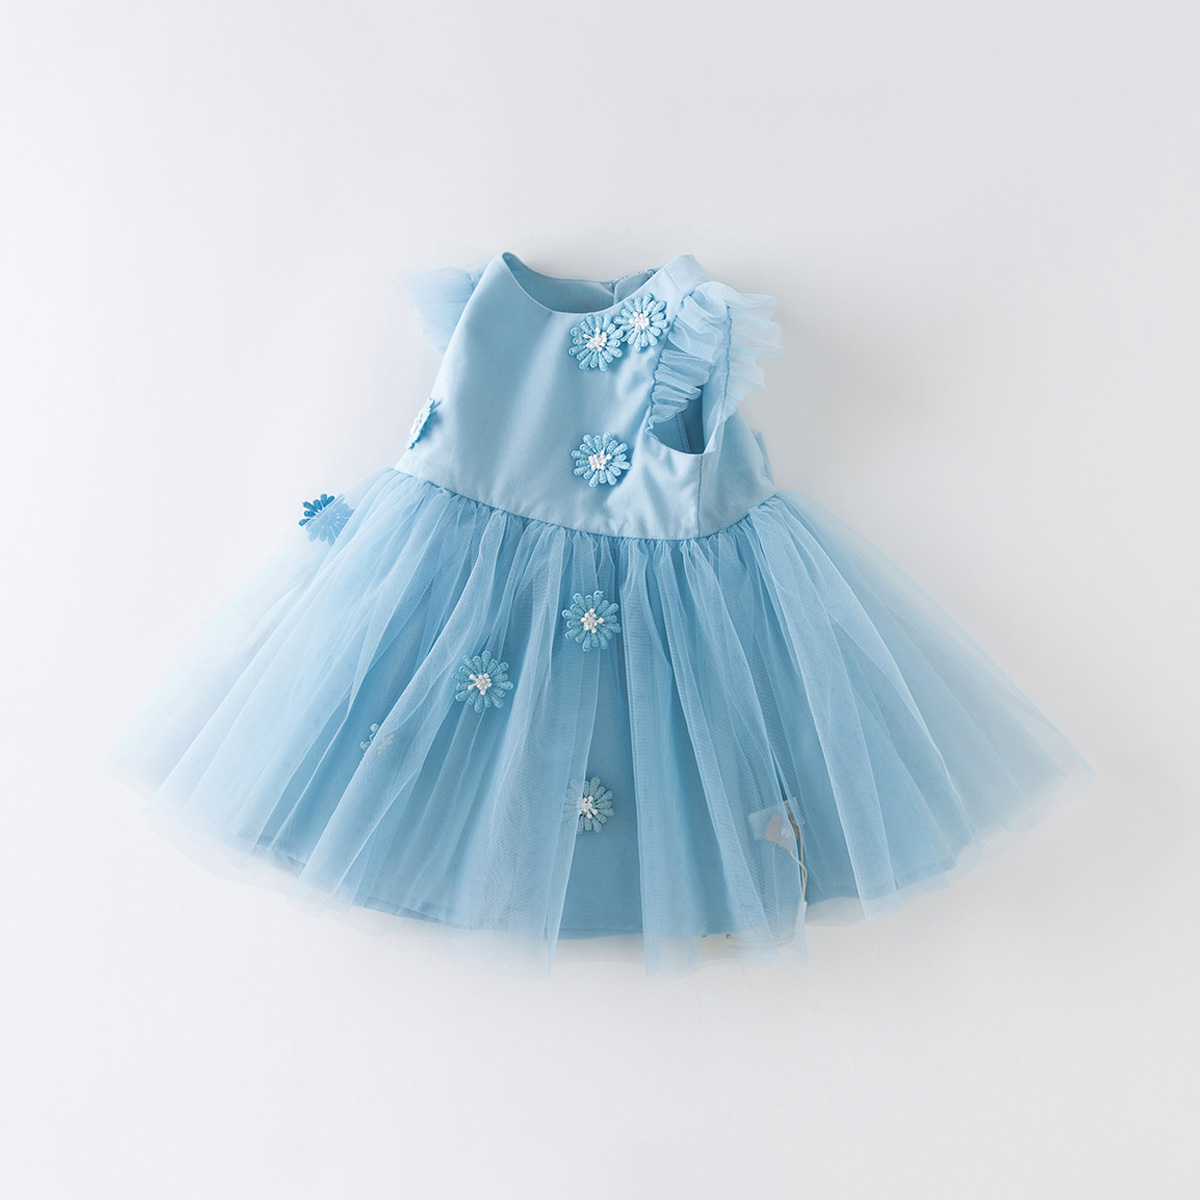 Davi Bella children's summer dress girl new dress girl baby princess dress children skirt inert clothes